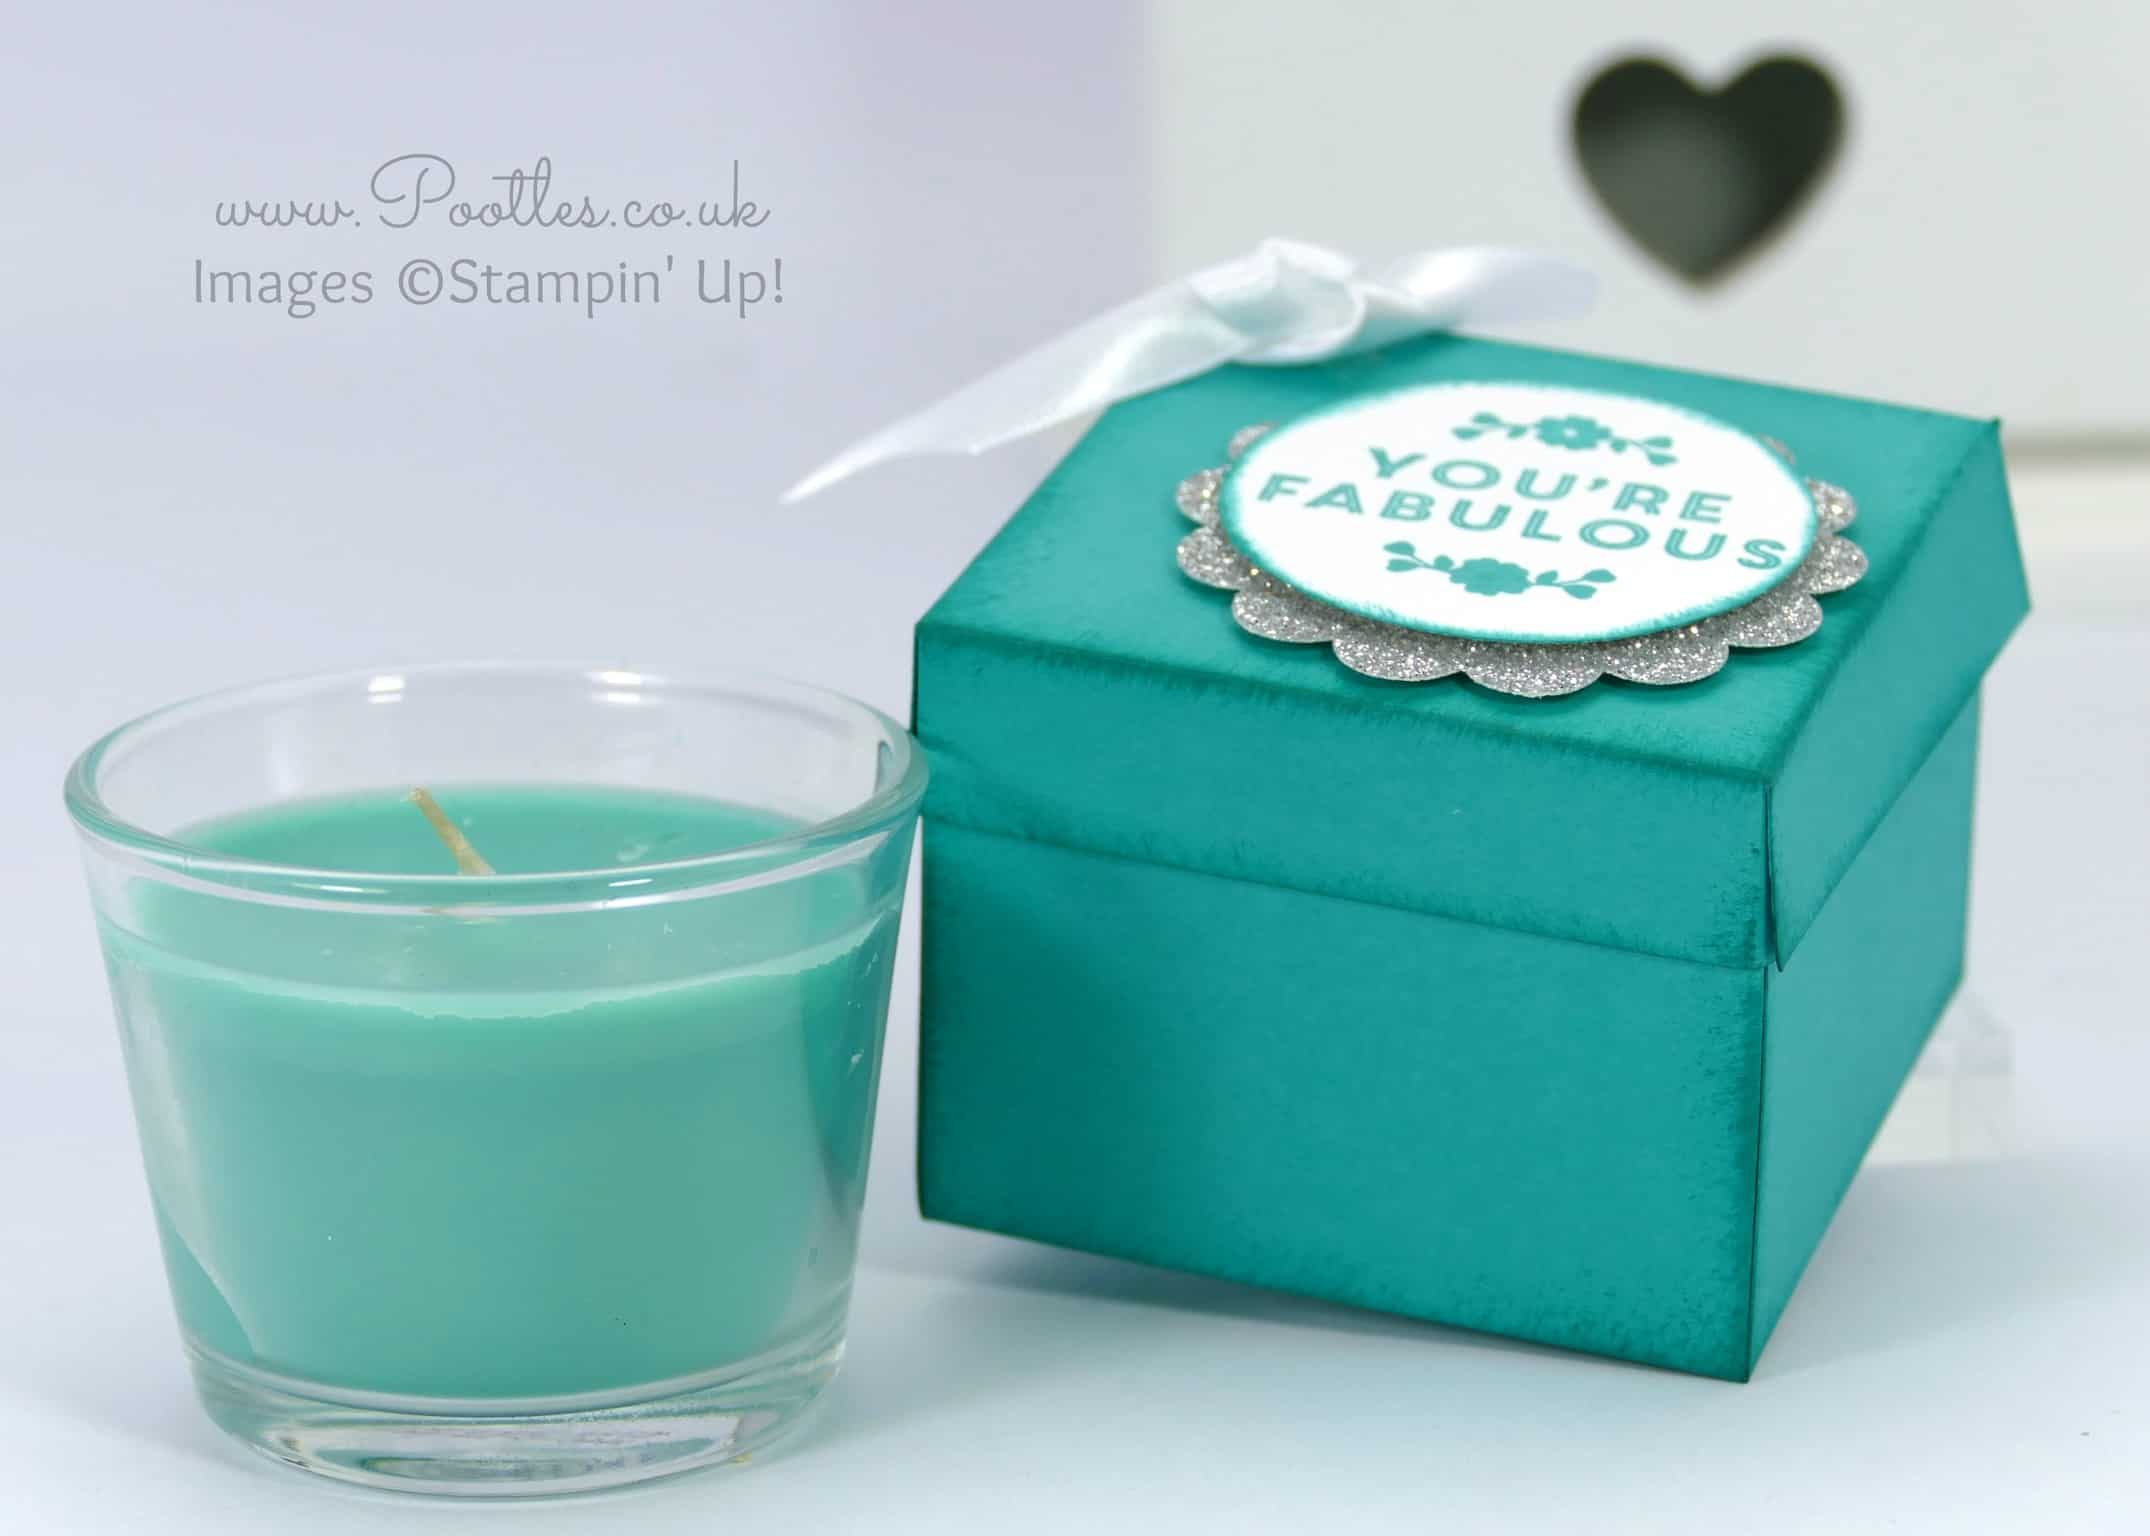 Jacob's Ikea Candle Jar Box Tutorial using Stampin' Up! Supplies